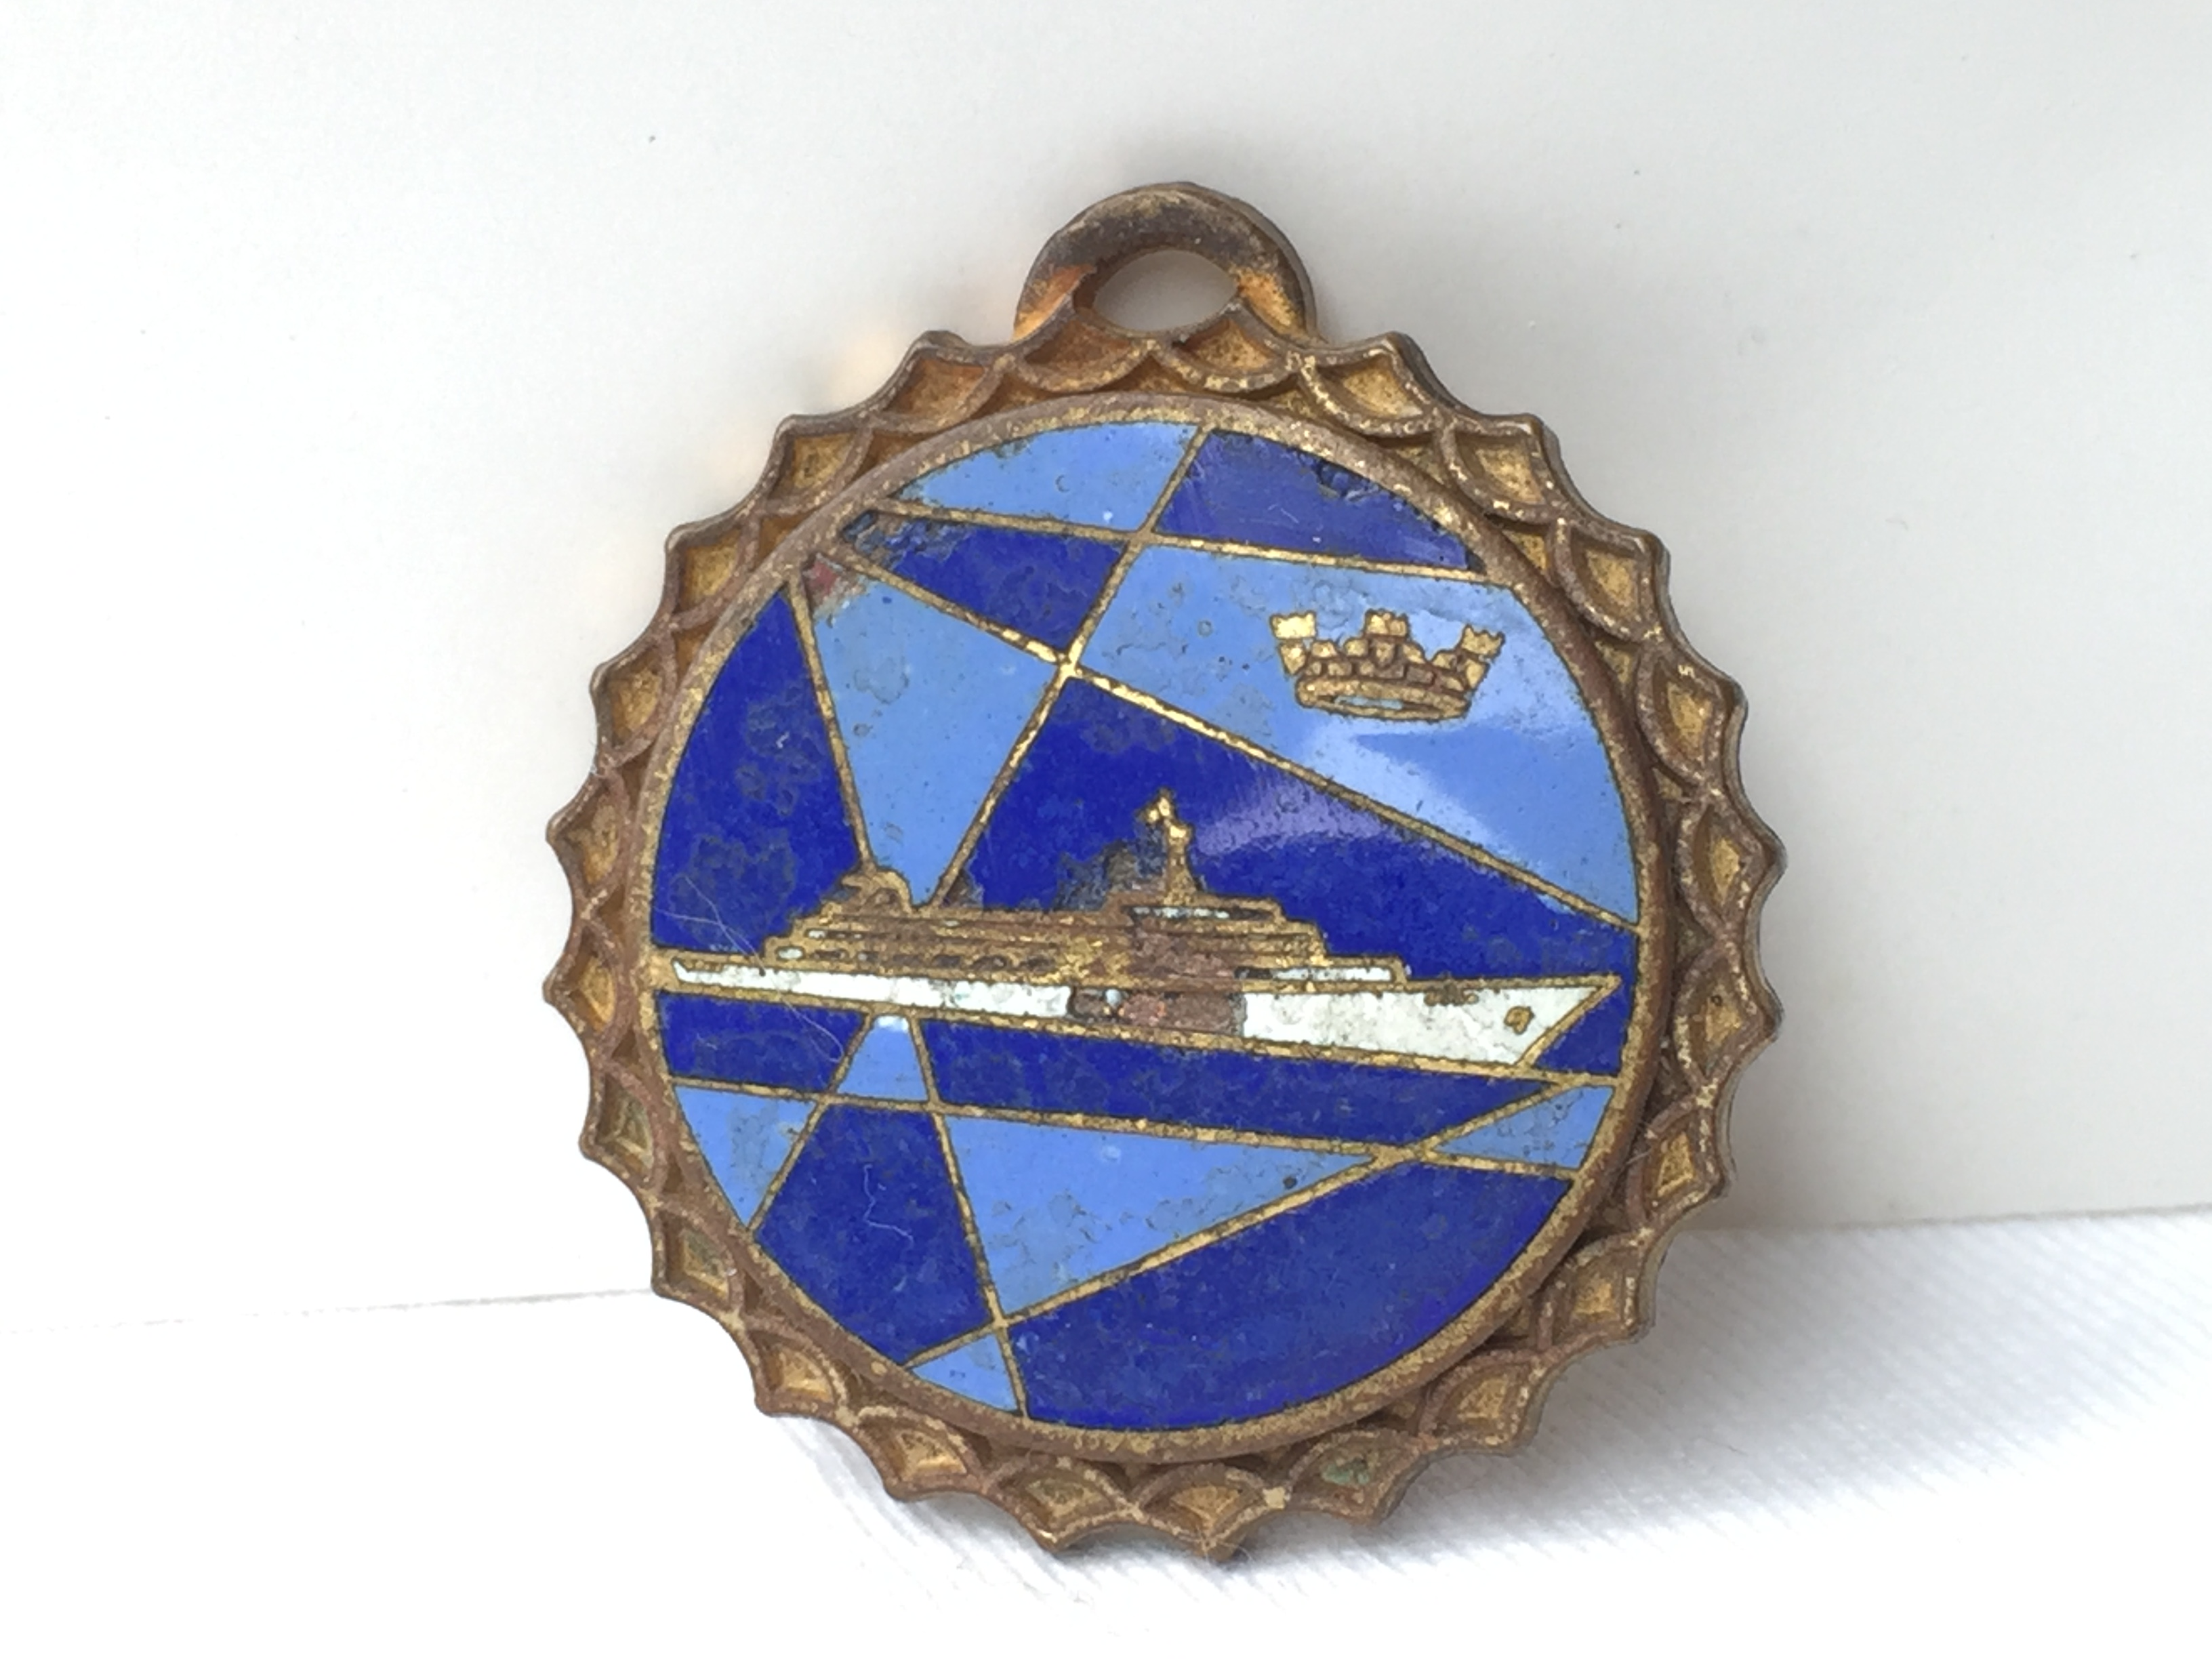 LAPEL PIN BADGE FROM THE HOME LINE VESSEL THE SS OCEANIC